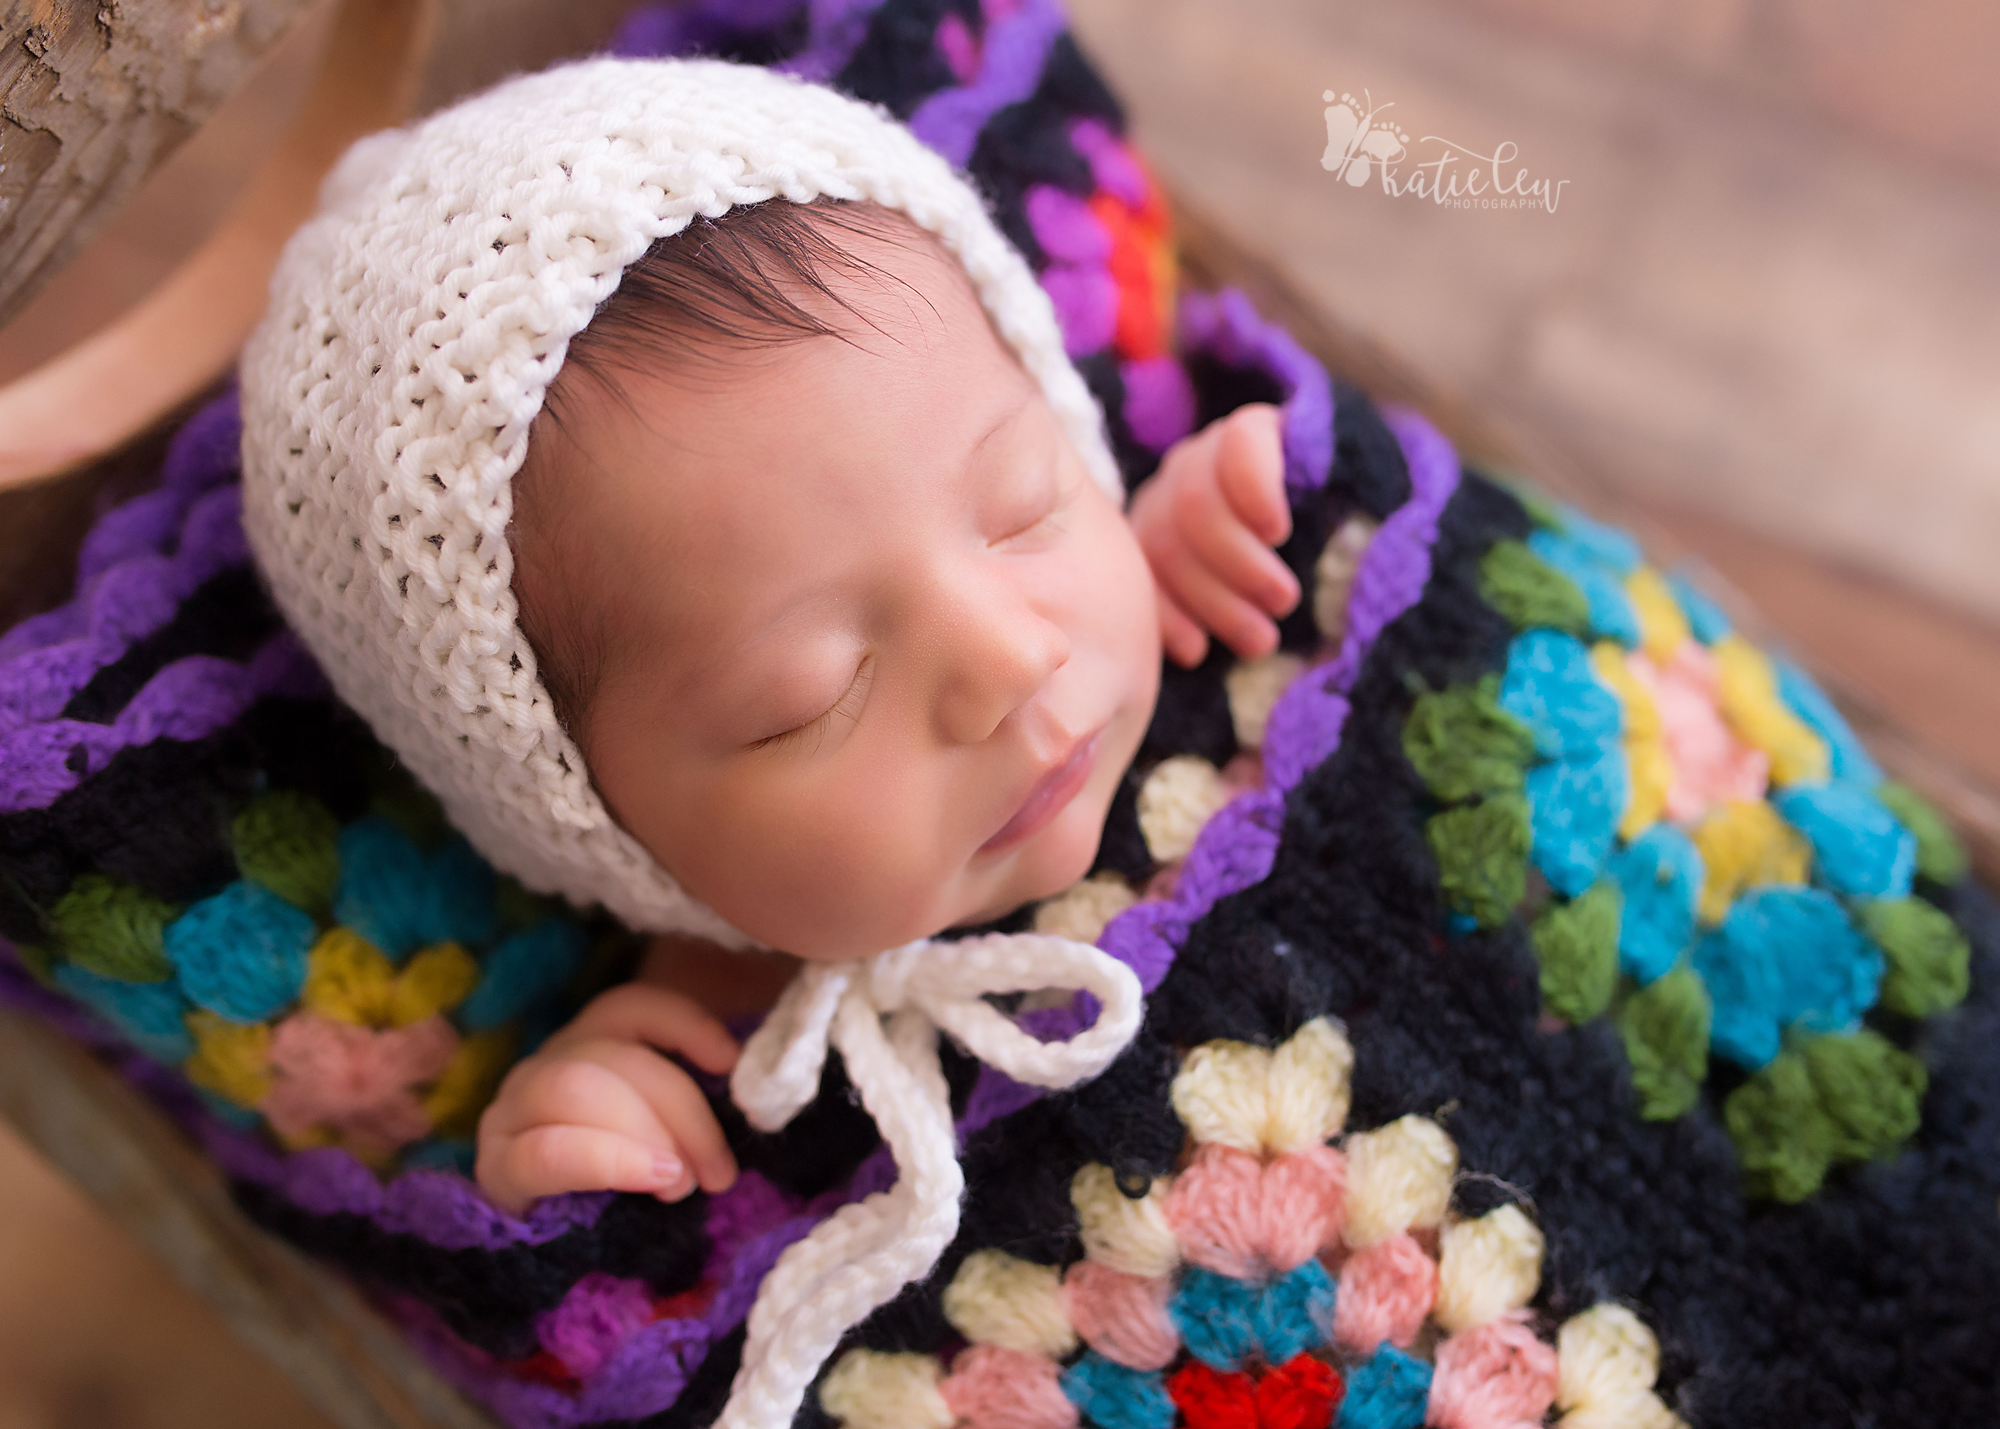 Baby tucked in a bed wrapped in a crochet quilt